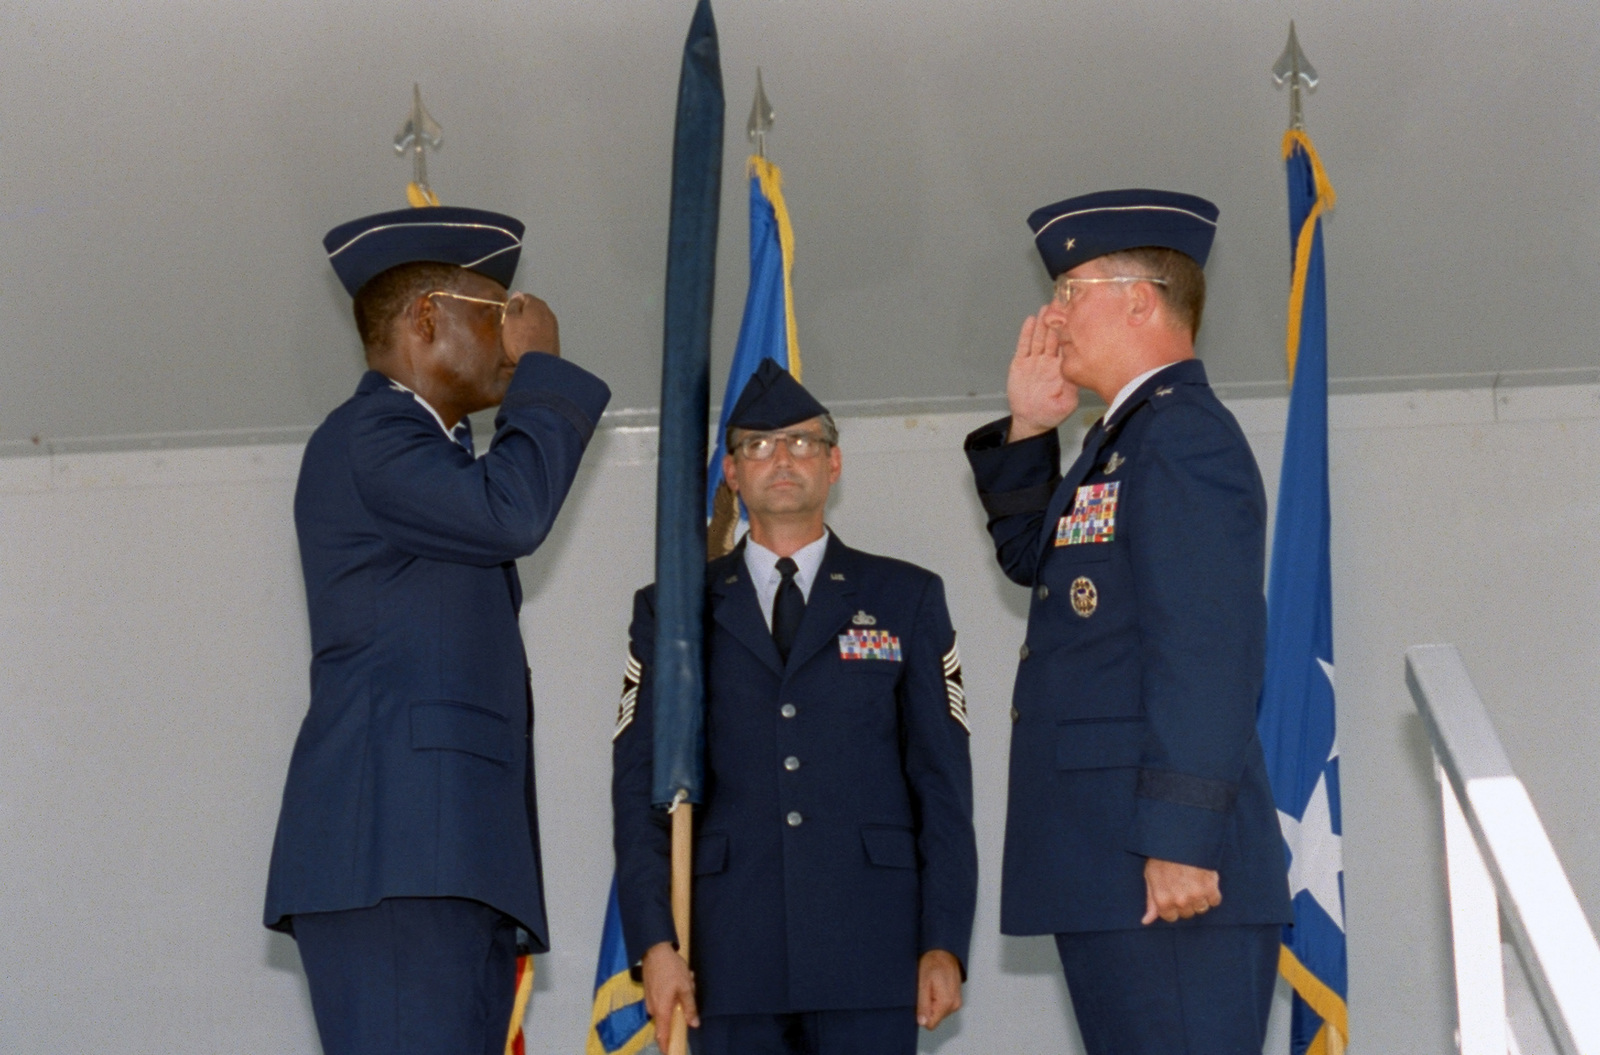 Brigadier General (BGEN) Robert Murdock, (right), USAF, San Antonio - Air Logistics Center (SA-ALC) Commander, relinquishes command to General (GEN) Lester L. Lyles, (left), USAF, Commander, Air Force Material Command (AFMC). CHIEF MASTER Sergeant (CMSGT) BIll Schuster, SA-ALC Command CHIEF holds agency's guidon, during the Kelly AFB closing ceremonies. Although the closing ceremony is in history books, government officials still actually own Kelly property and will until federal and state environmental regulators okay remedies for the installation's 30 sites that need environmental clean-up, according to federal law provisions